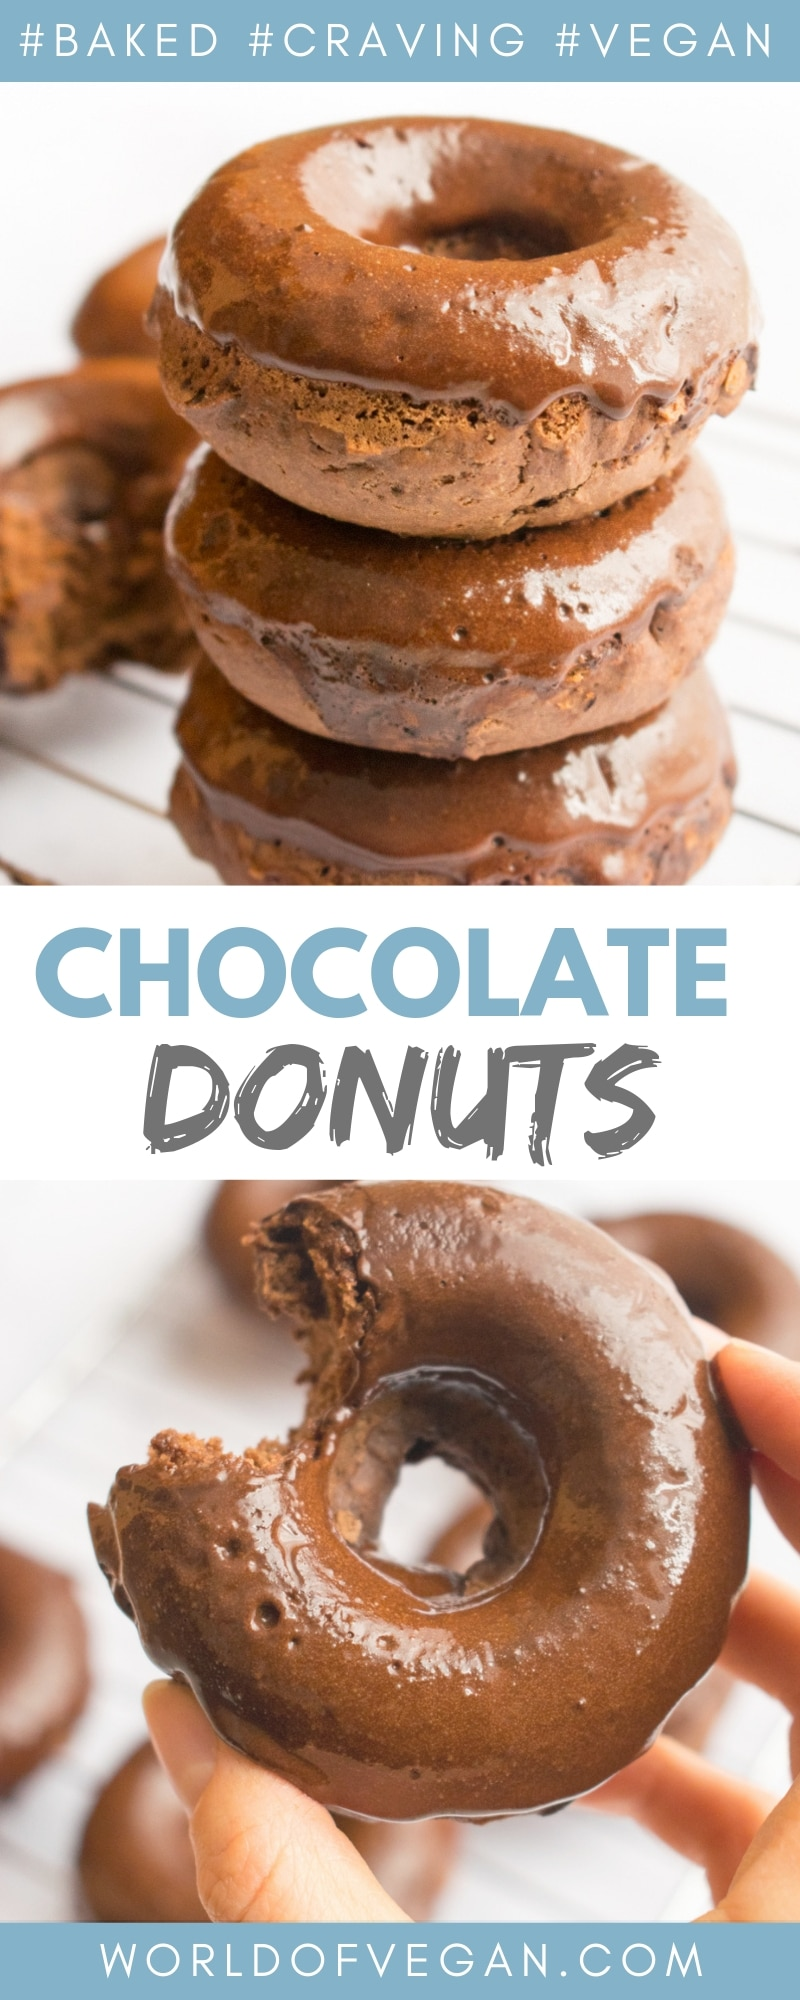 Double Chocolate Donuts—Made Vegan! | World of Vegan | #donuts #vegan #chocolate #dessert #party #worldofvegan